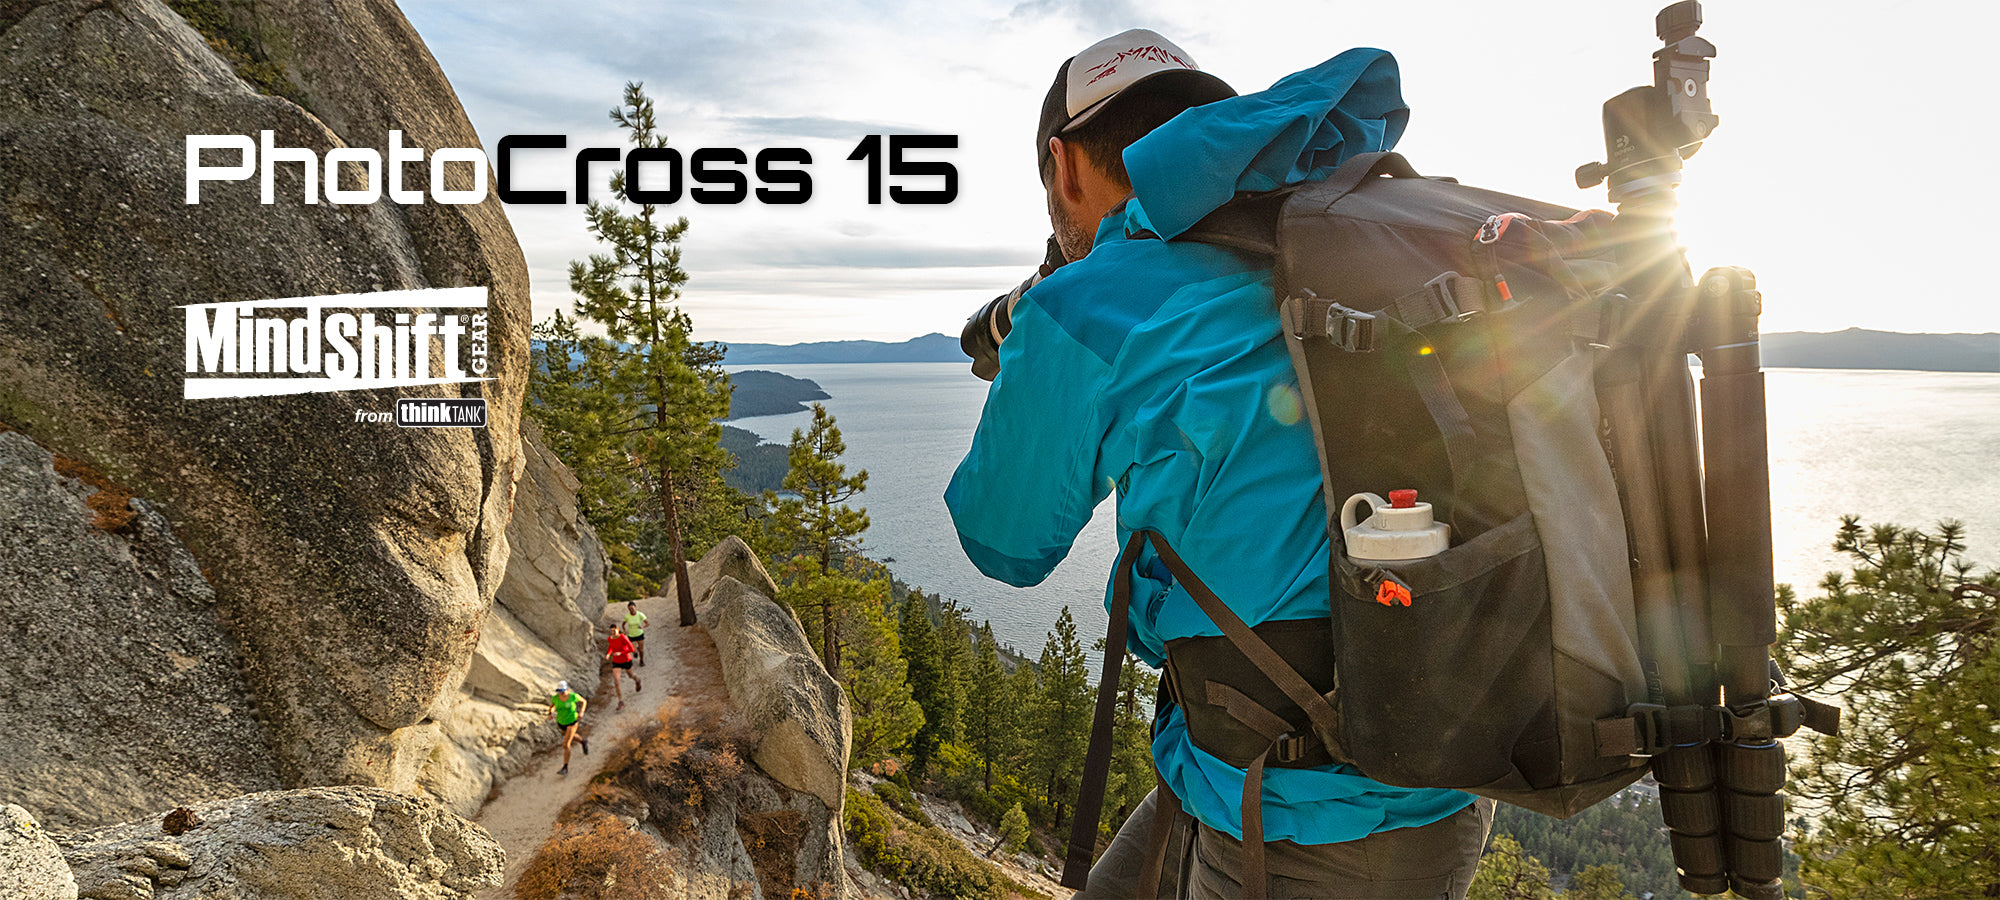 MindShift PhotoCross 15 backpack - Adventure photographers need a camera bag that's as tough as they are.